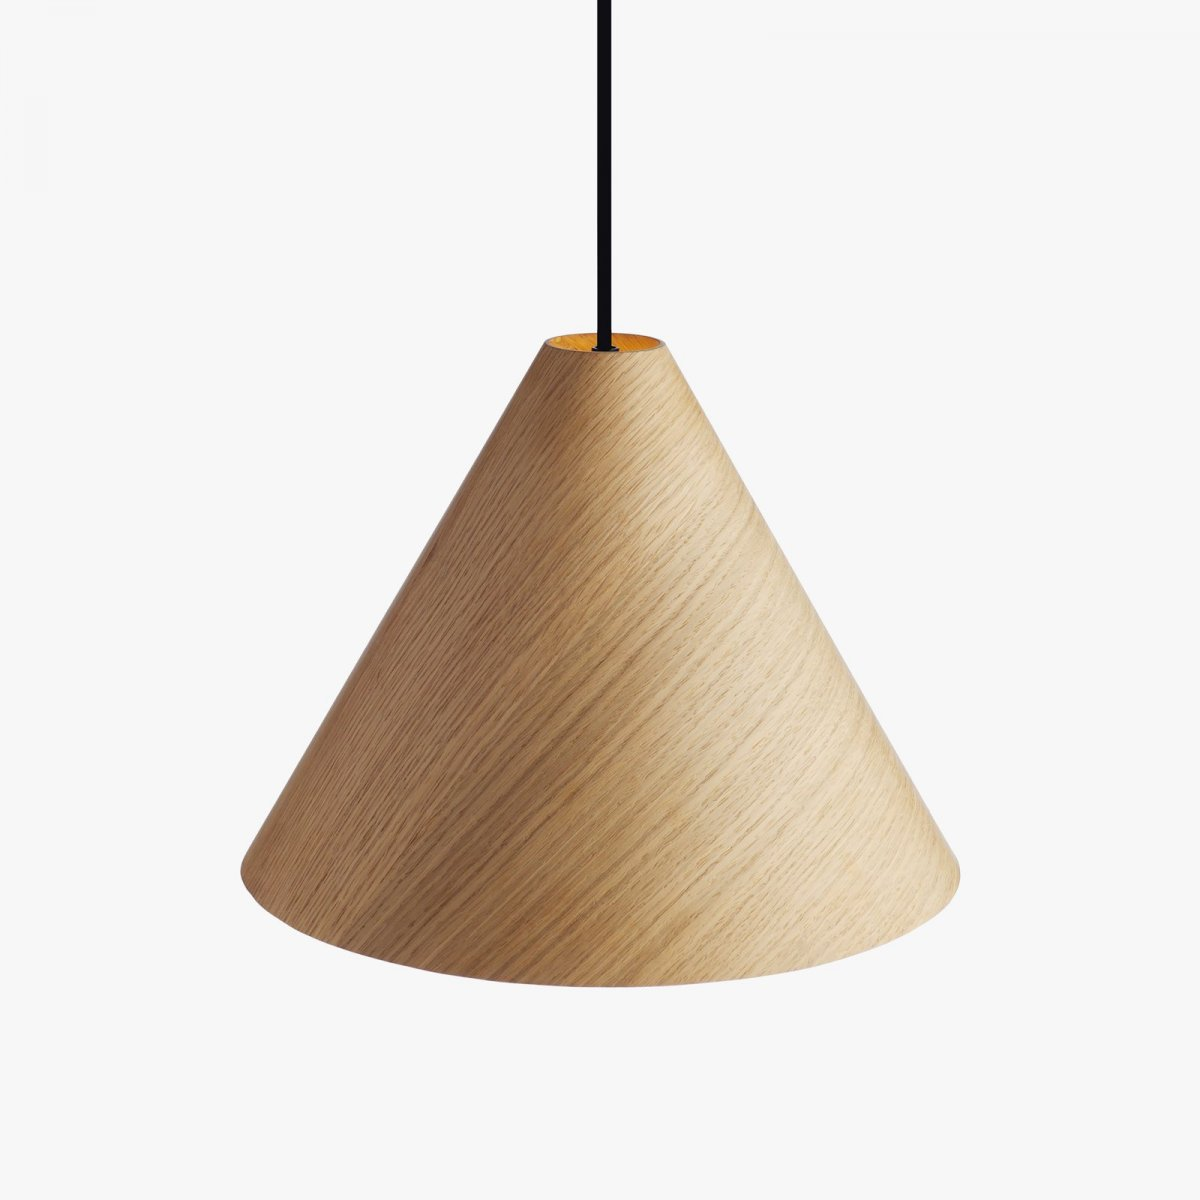 30 Degrees pendant lamp with Cord Set.